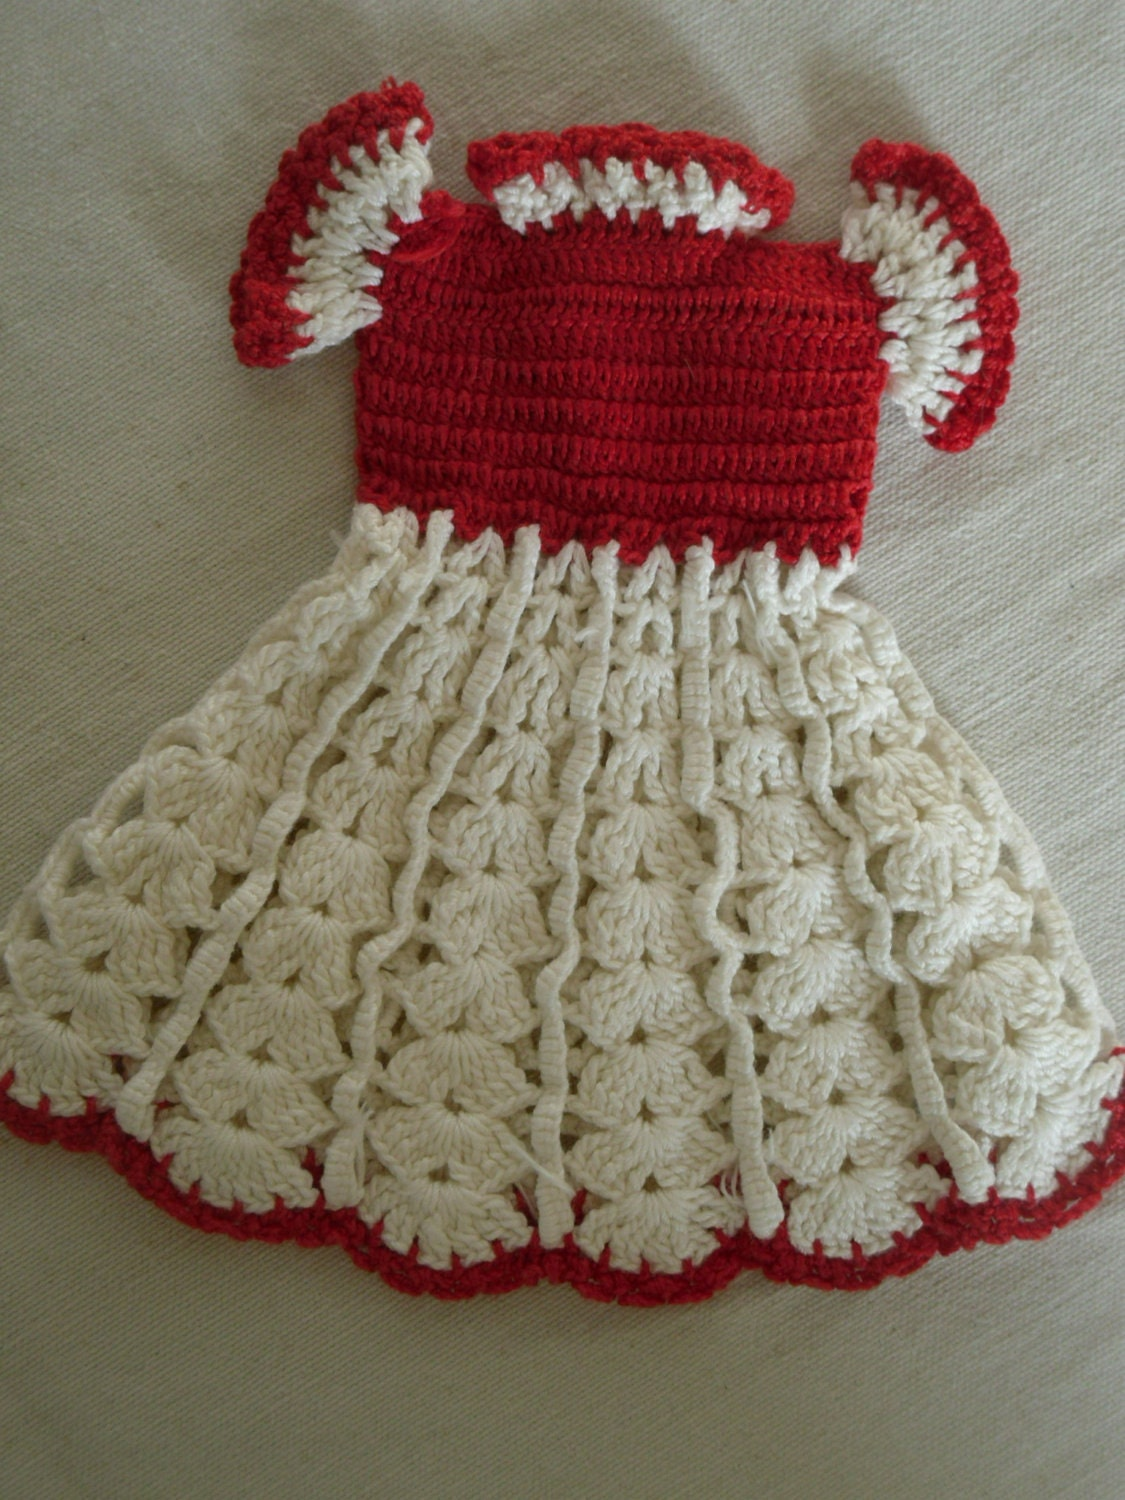 Crocheting Clothes : How to Make a Crocheted Dress for Dolls eHow.com